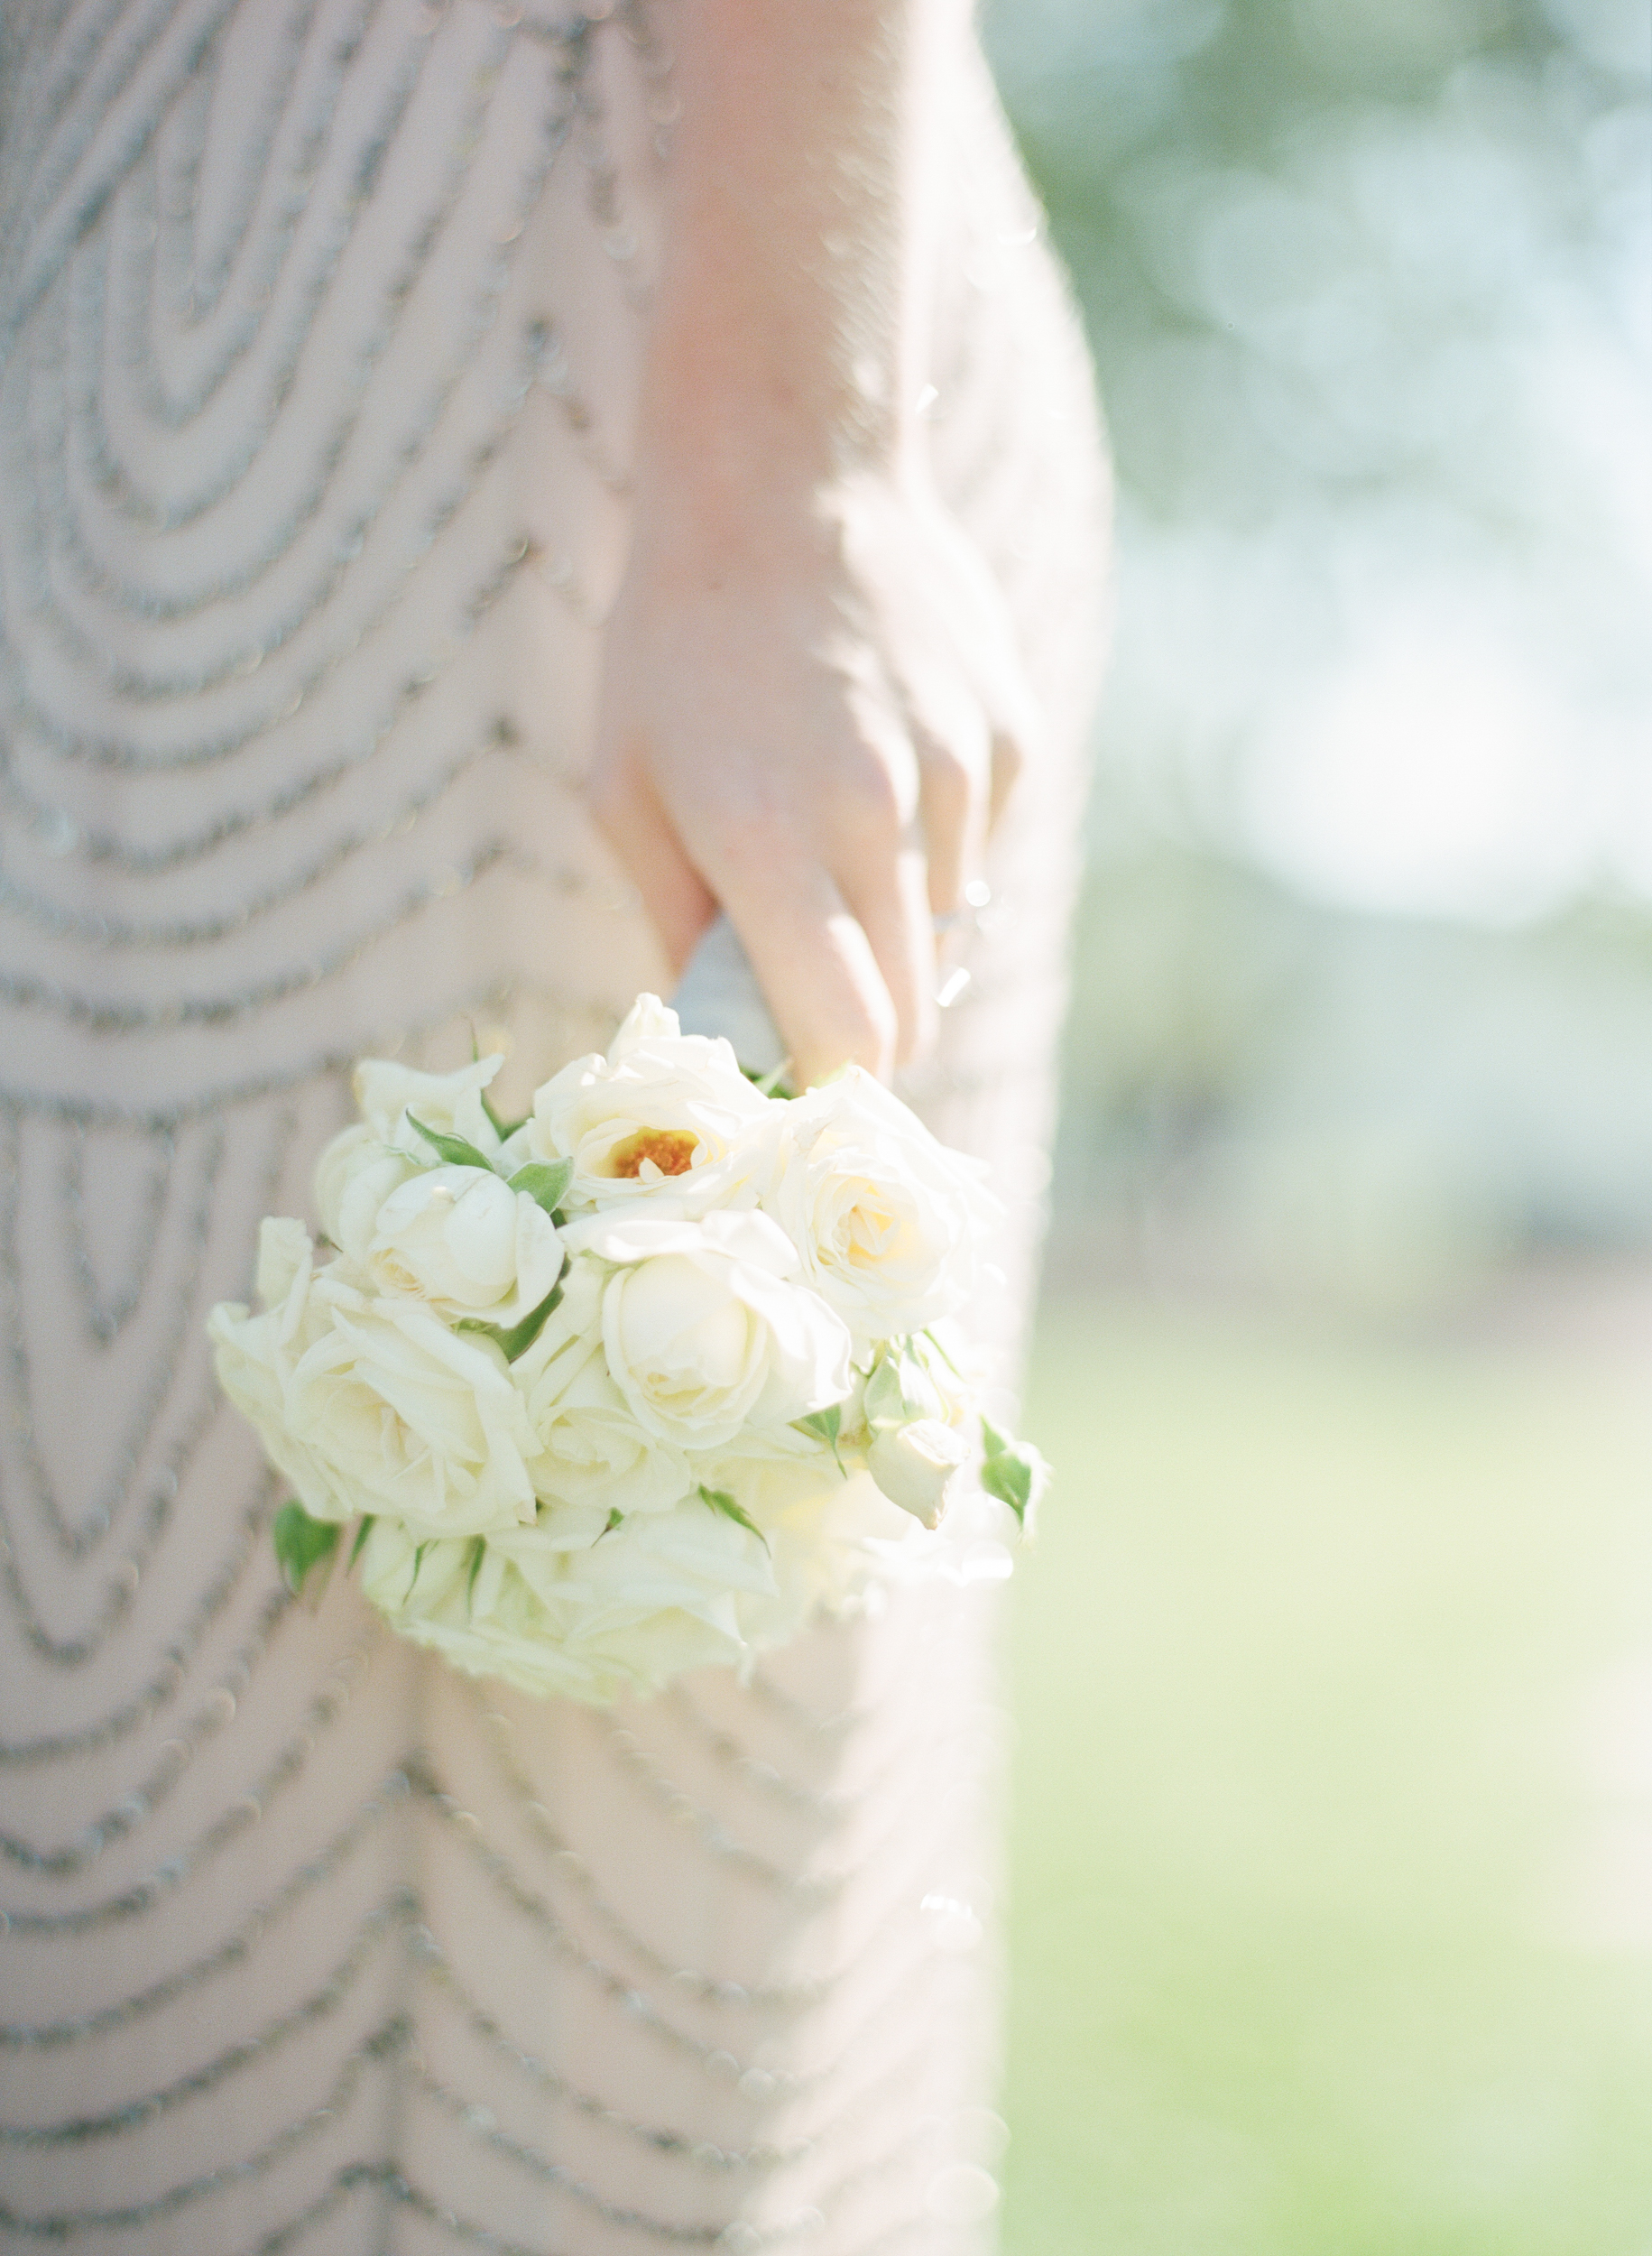 Sylvie-Gil-film-destination-photography-Kunde-winery-Napa-Valley-elegant-shabby-chic-bridesmaids-bouquet